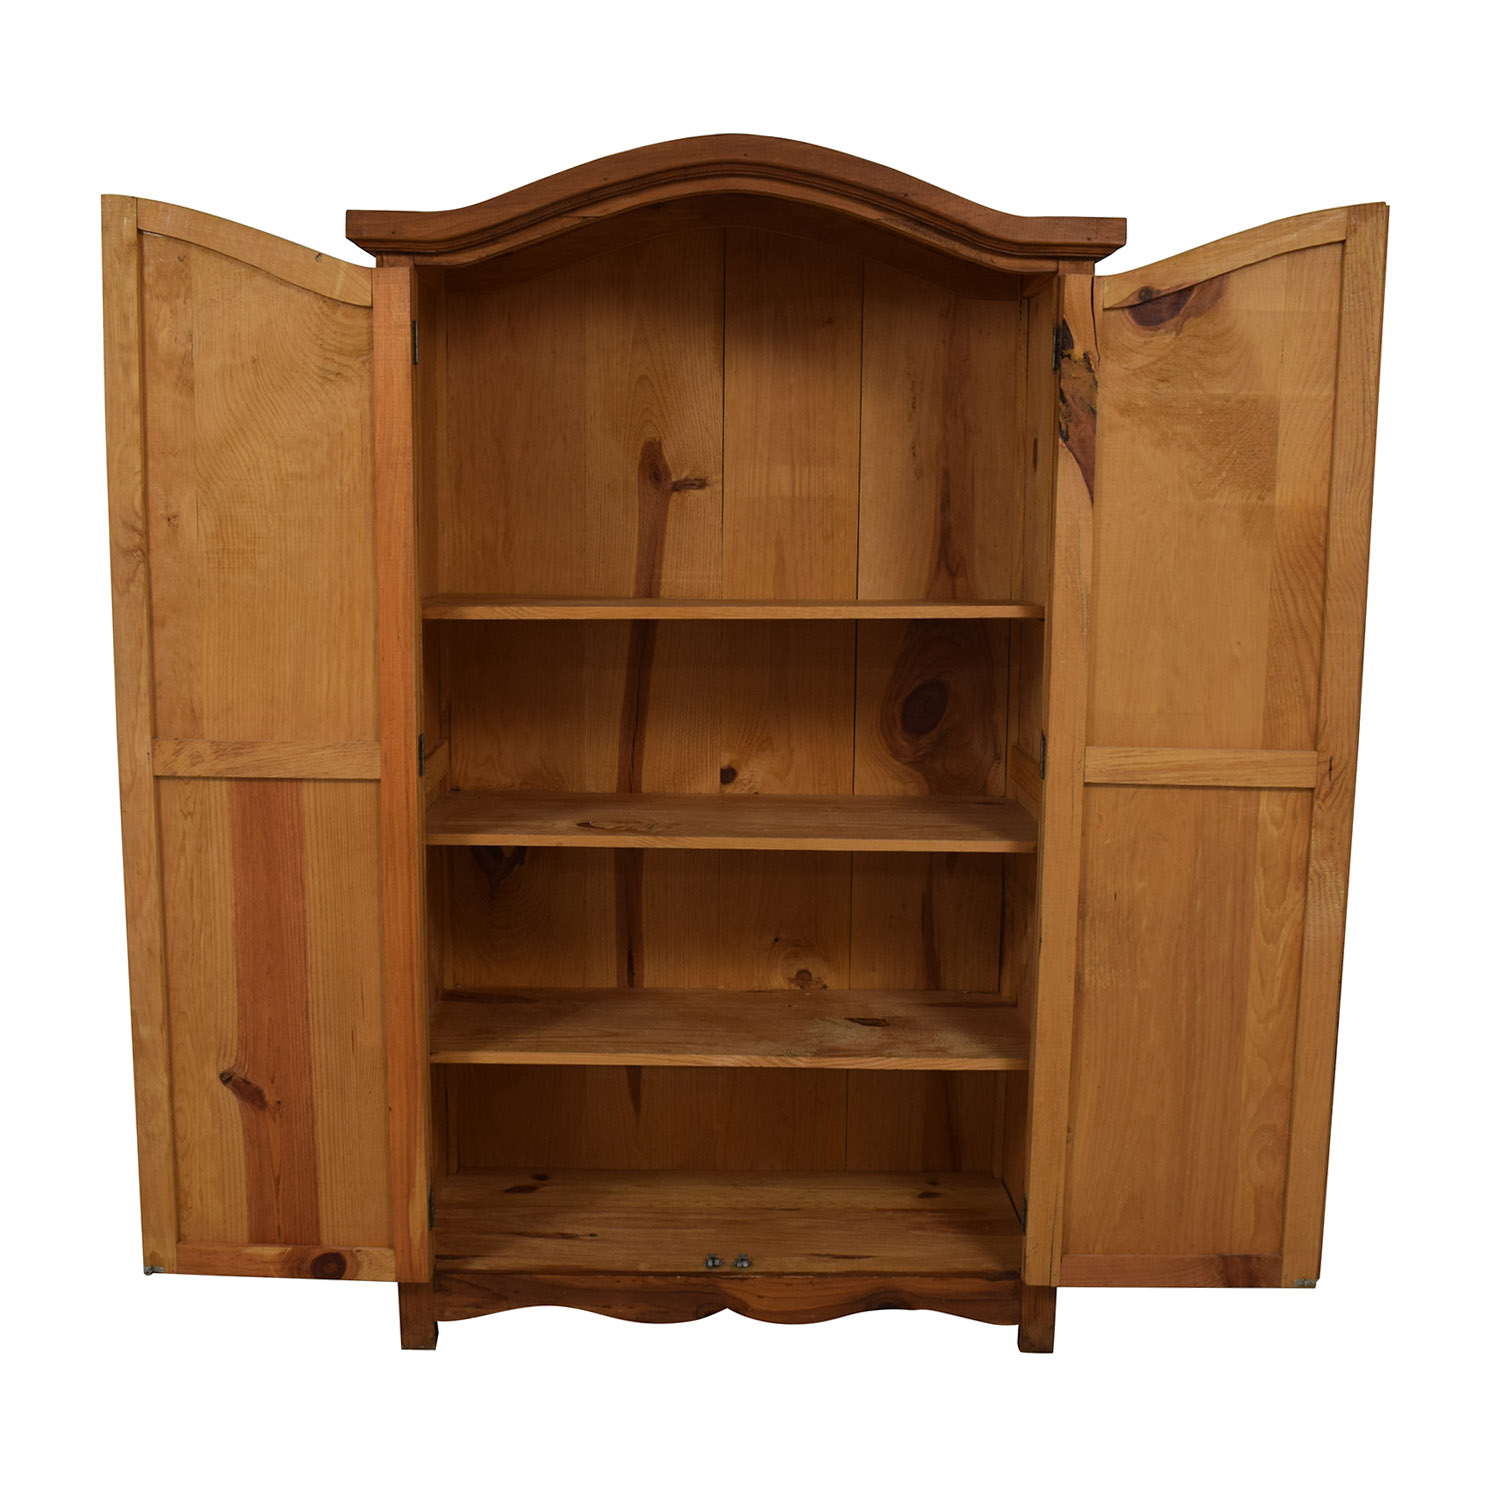 Dovetailed Wood Wardrobe Armoire dimensions